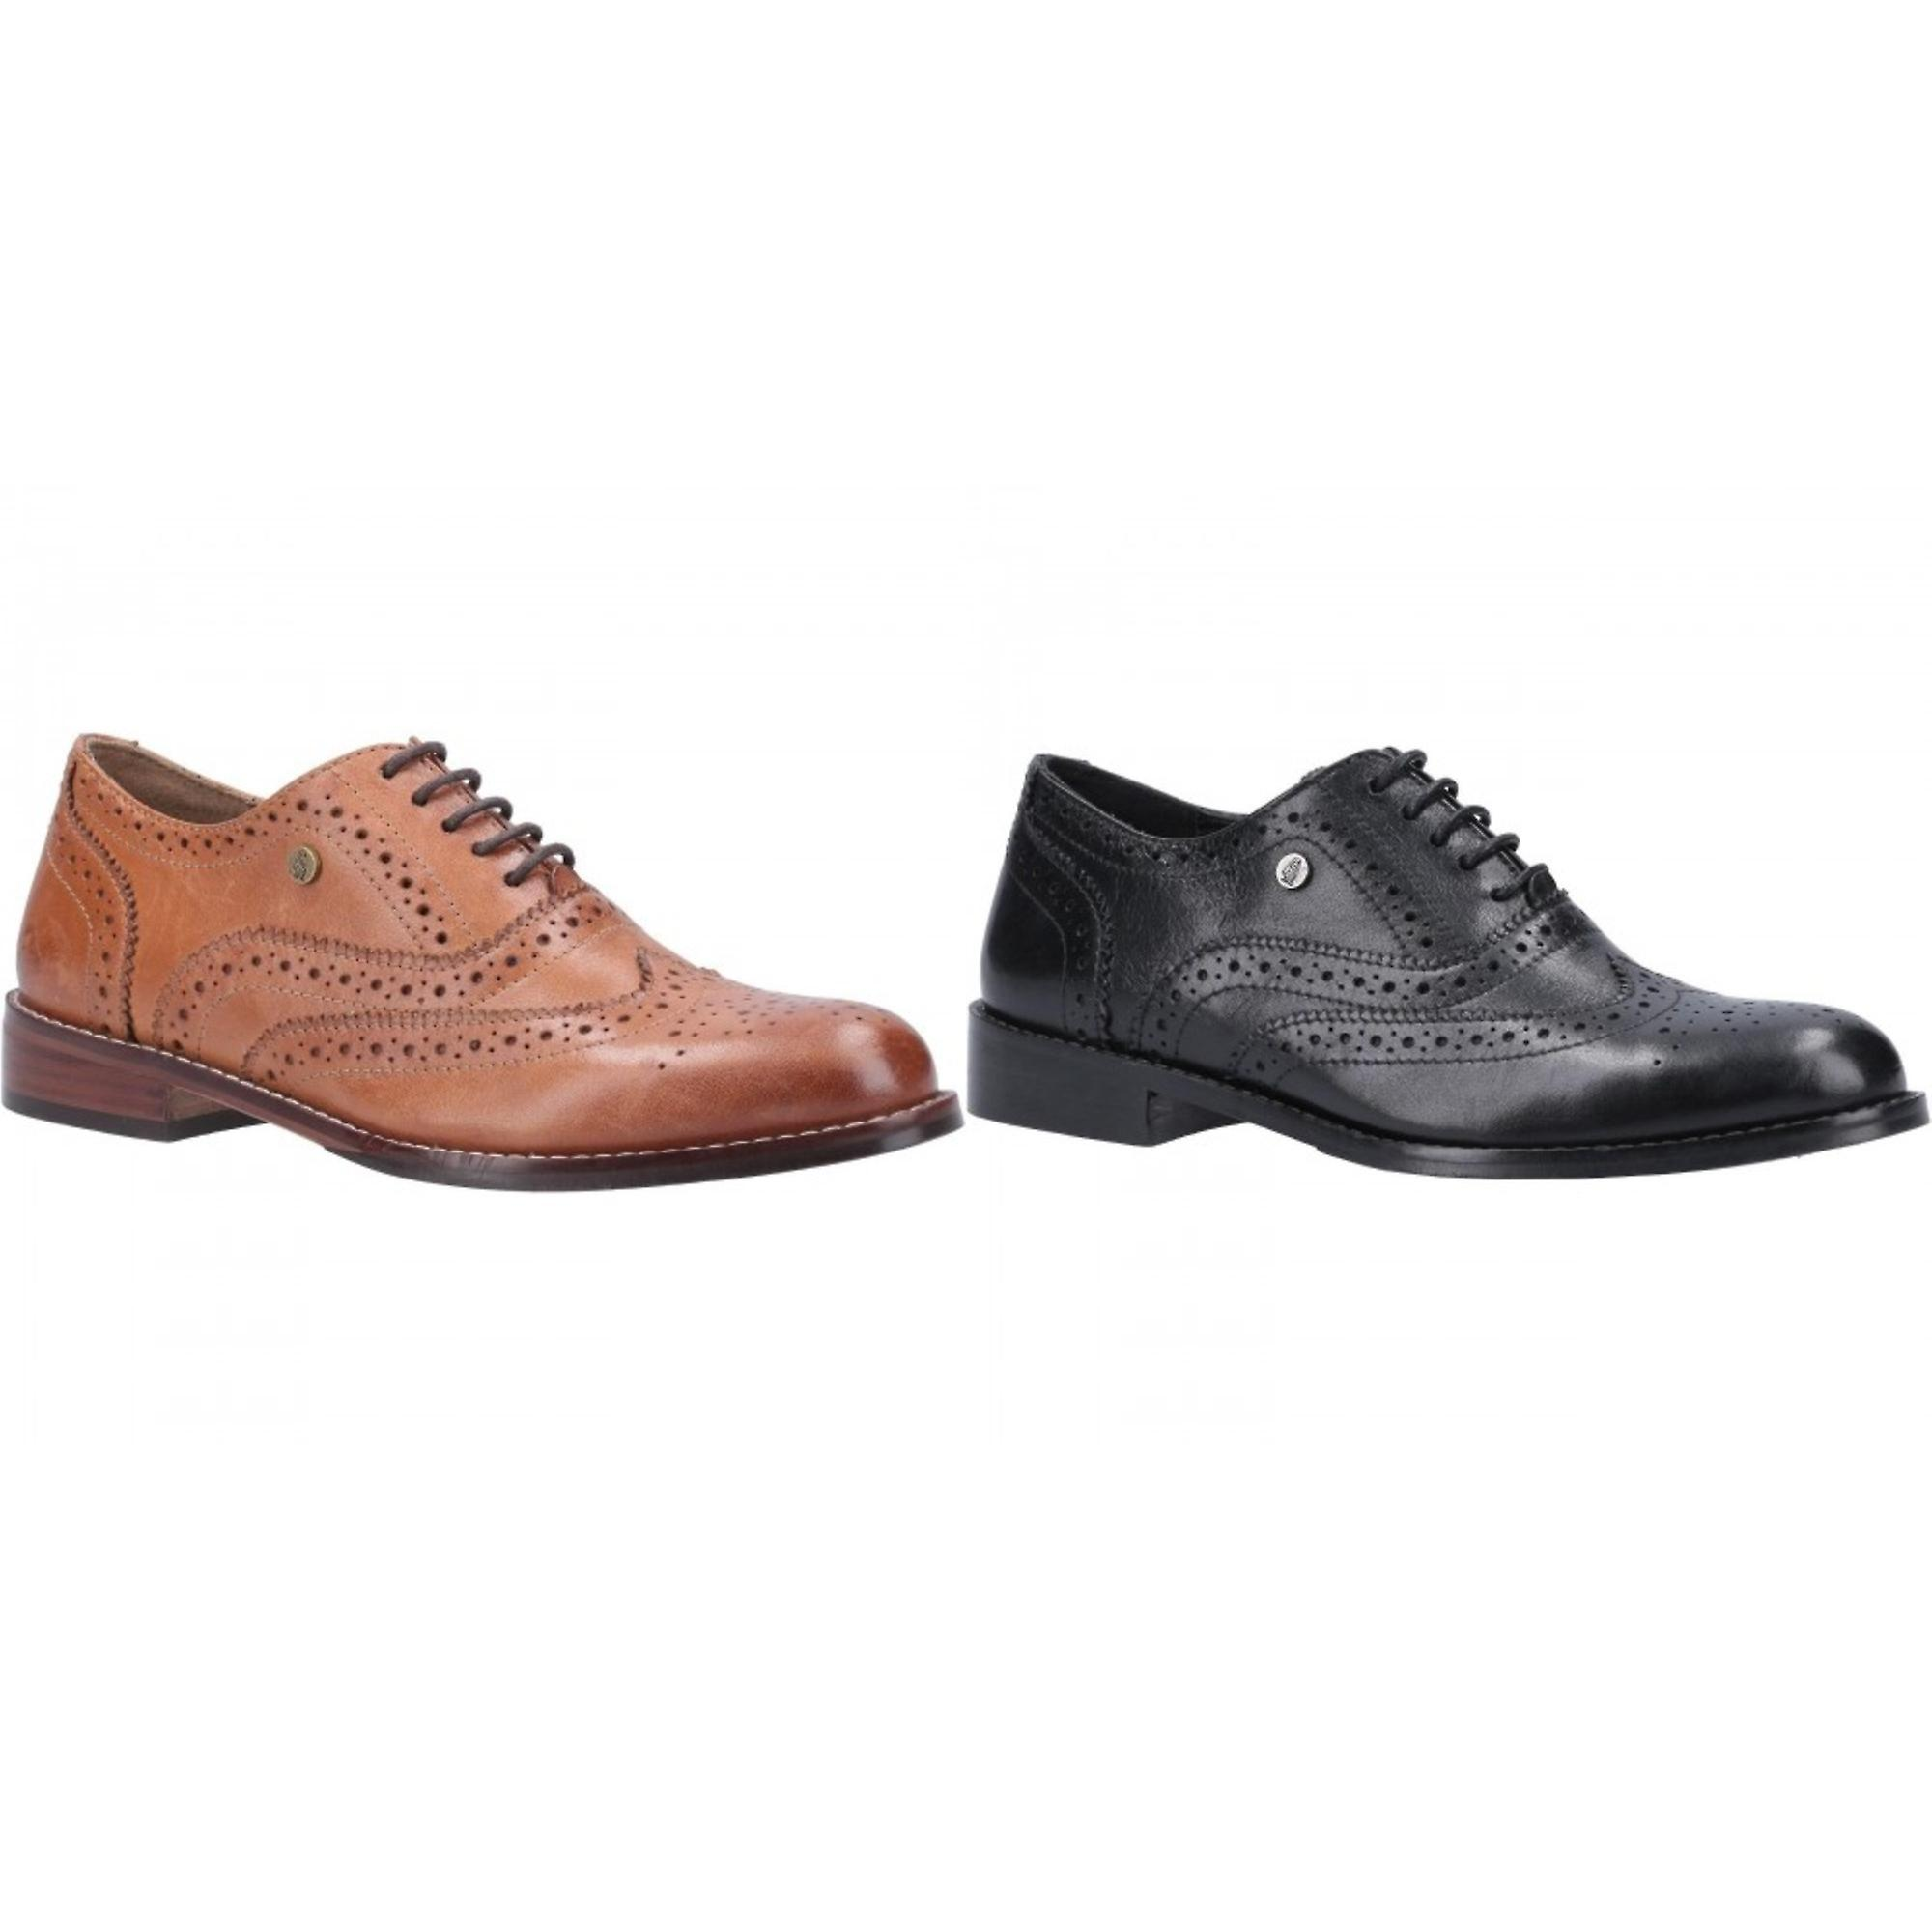 Hush Puppies Womens/Ladies Natalie Lace Up Leather Brogue Shoe g5pbl